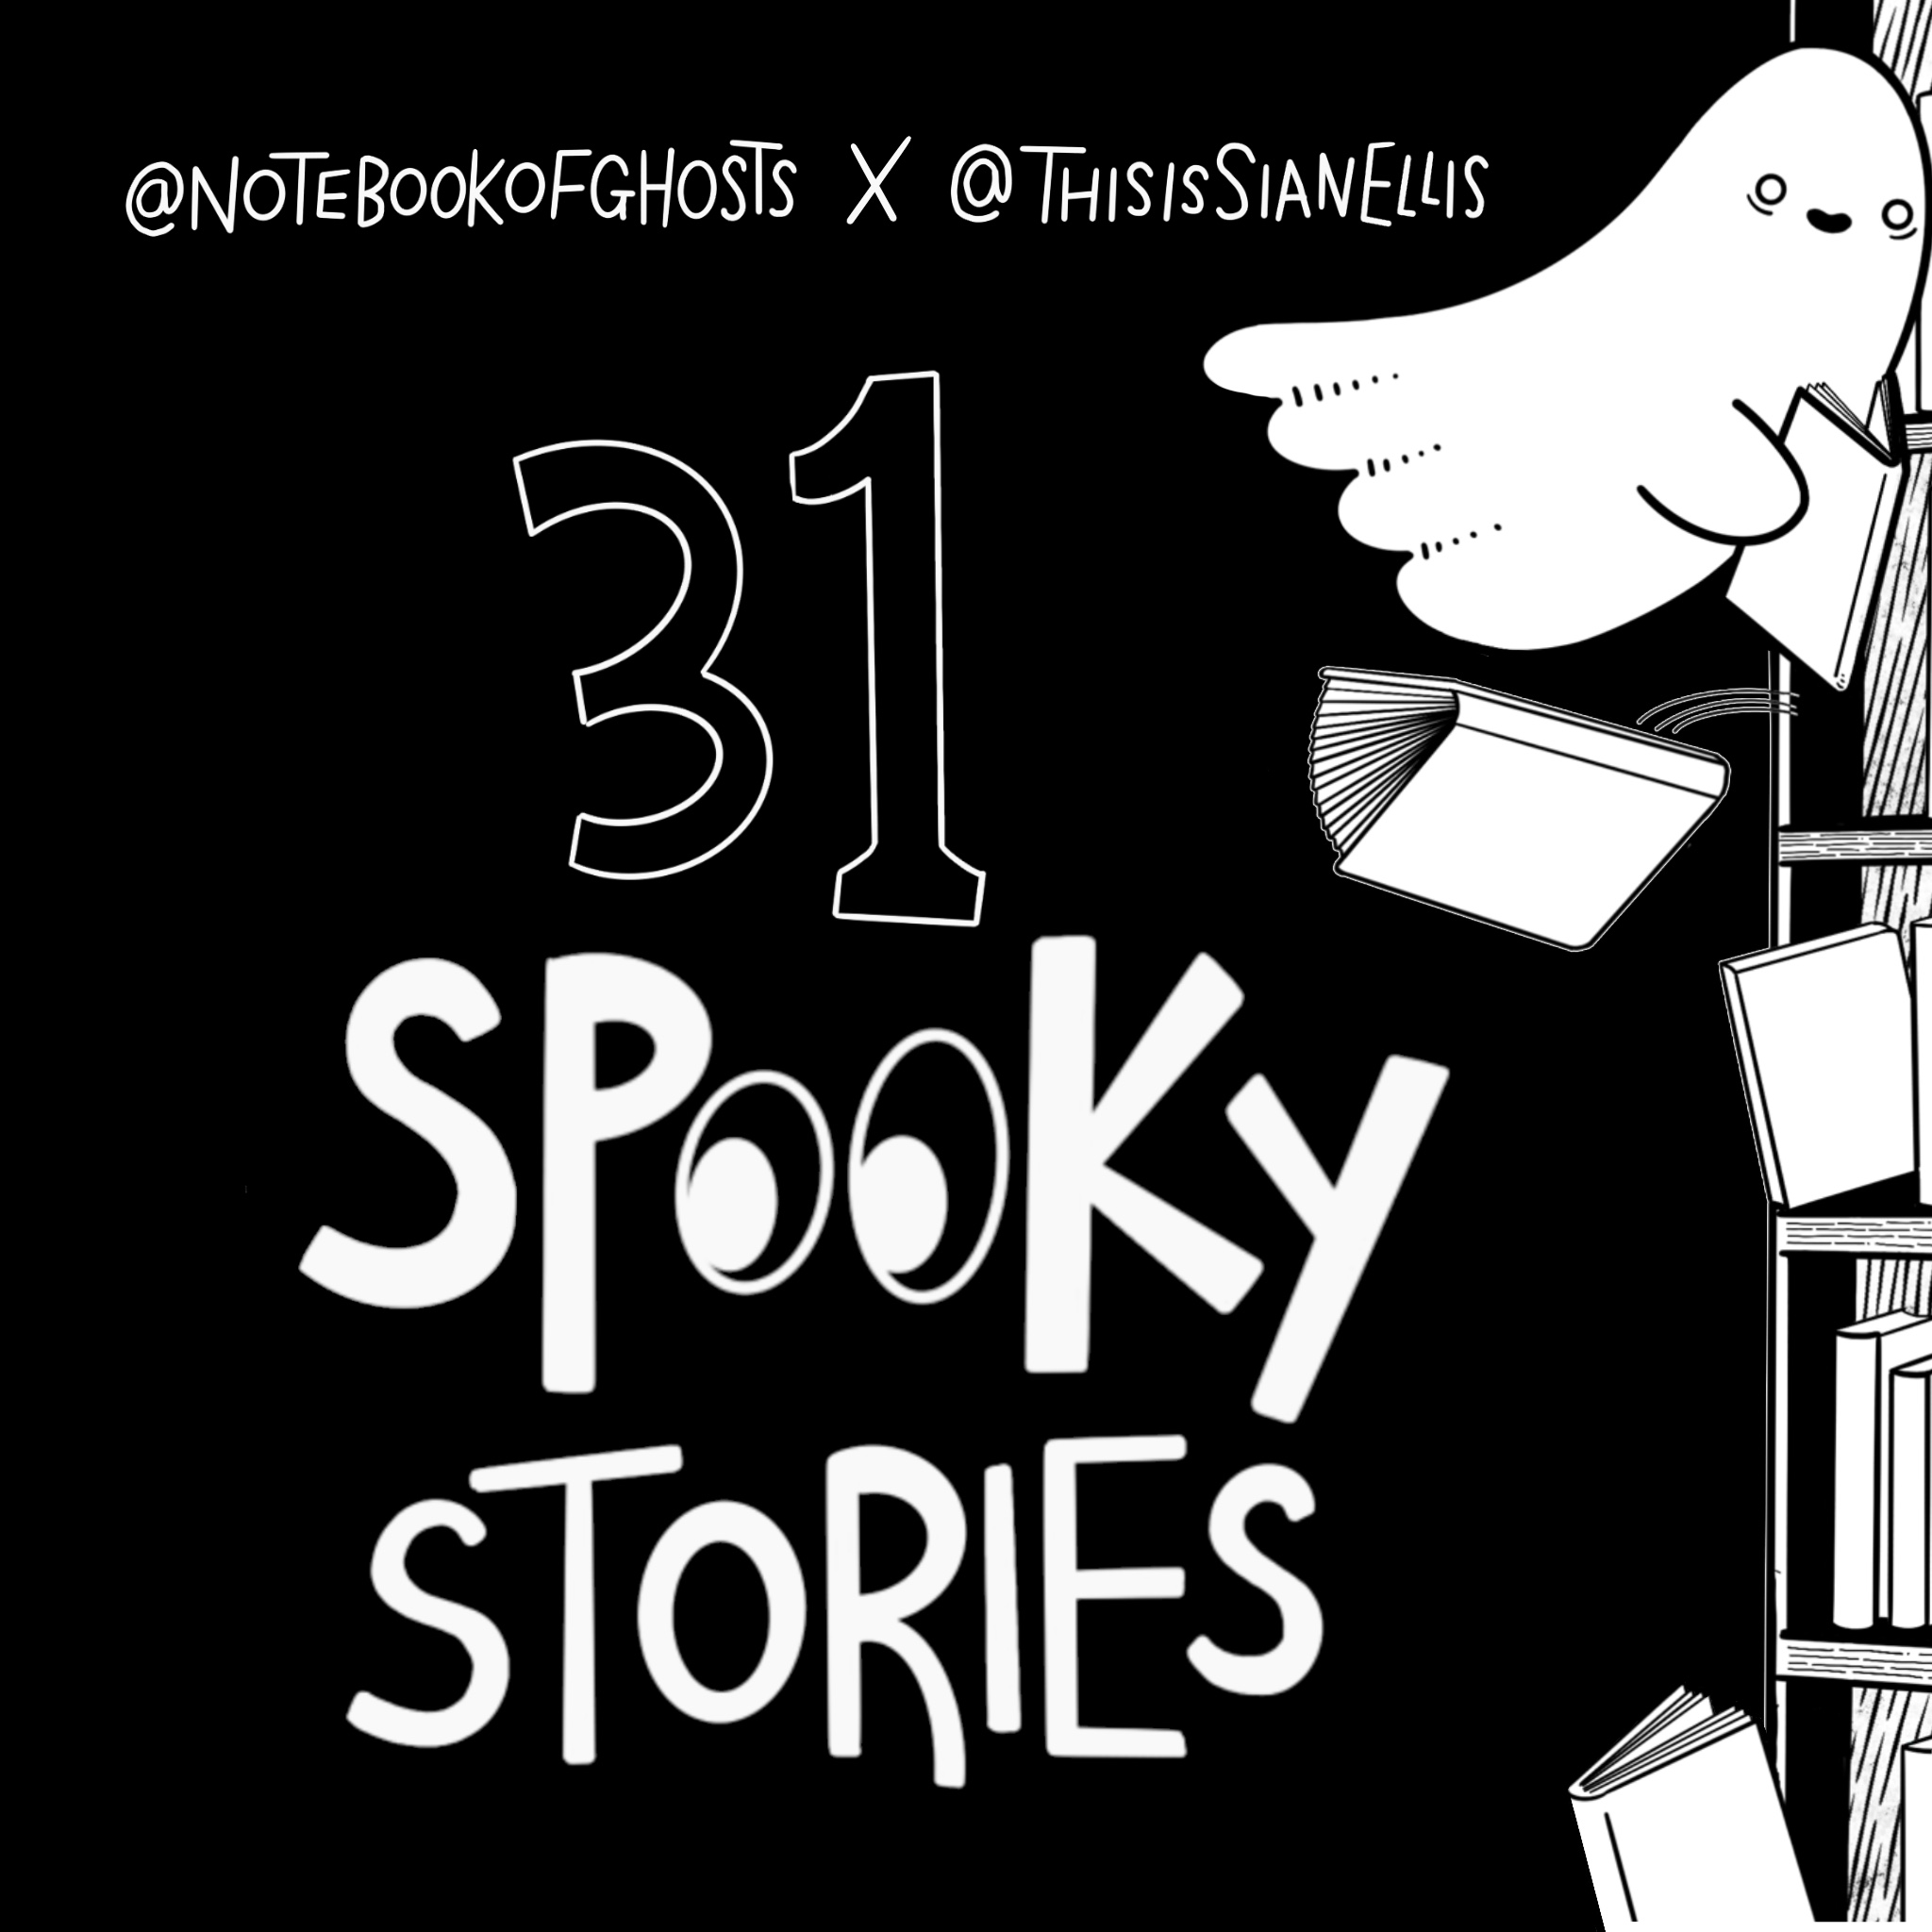 31 Spooky Stories Collab with Notebook of Ghosts